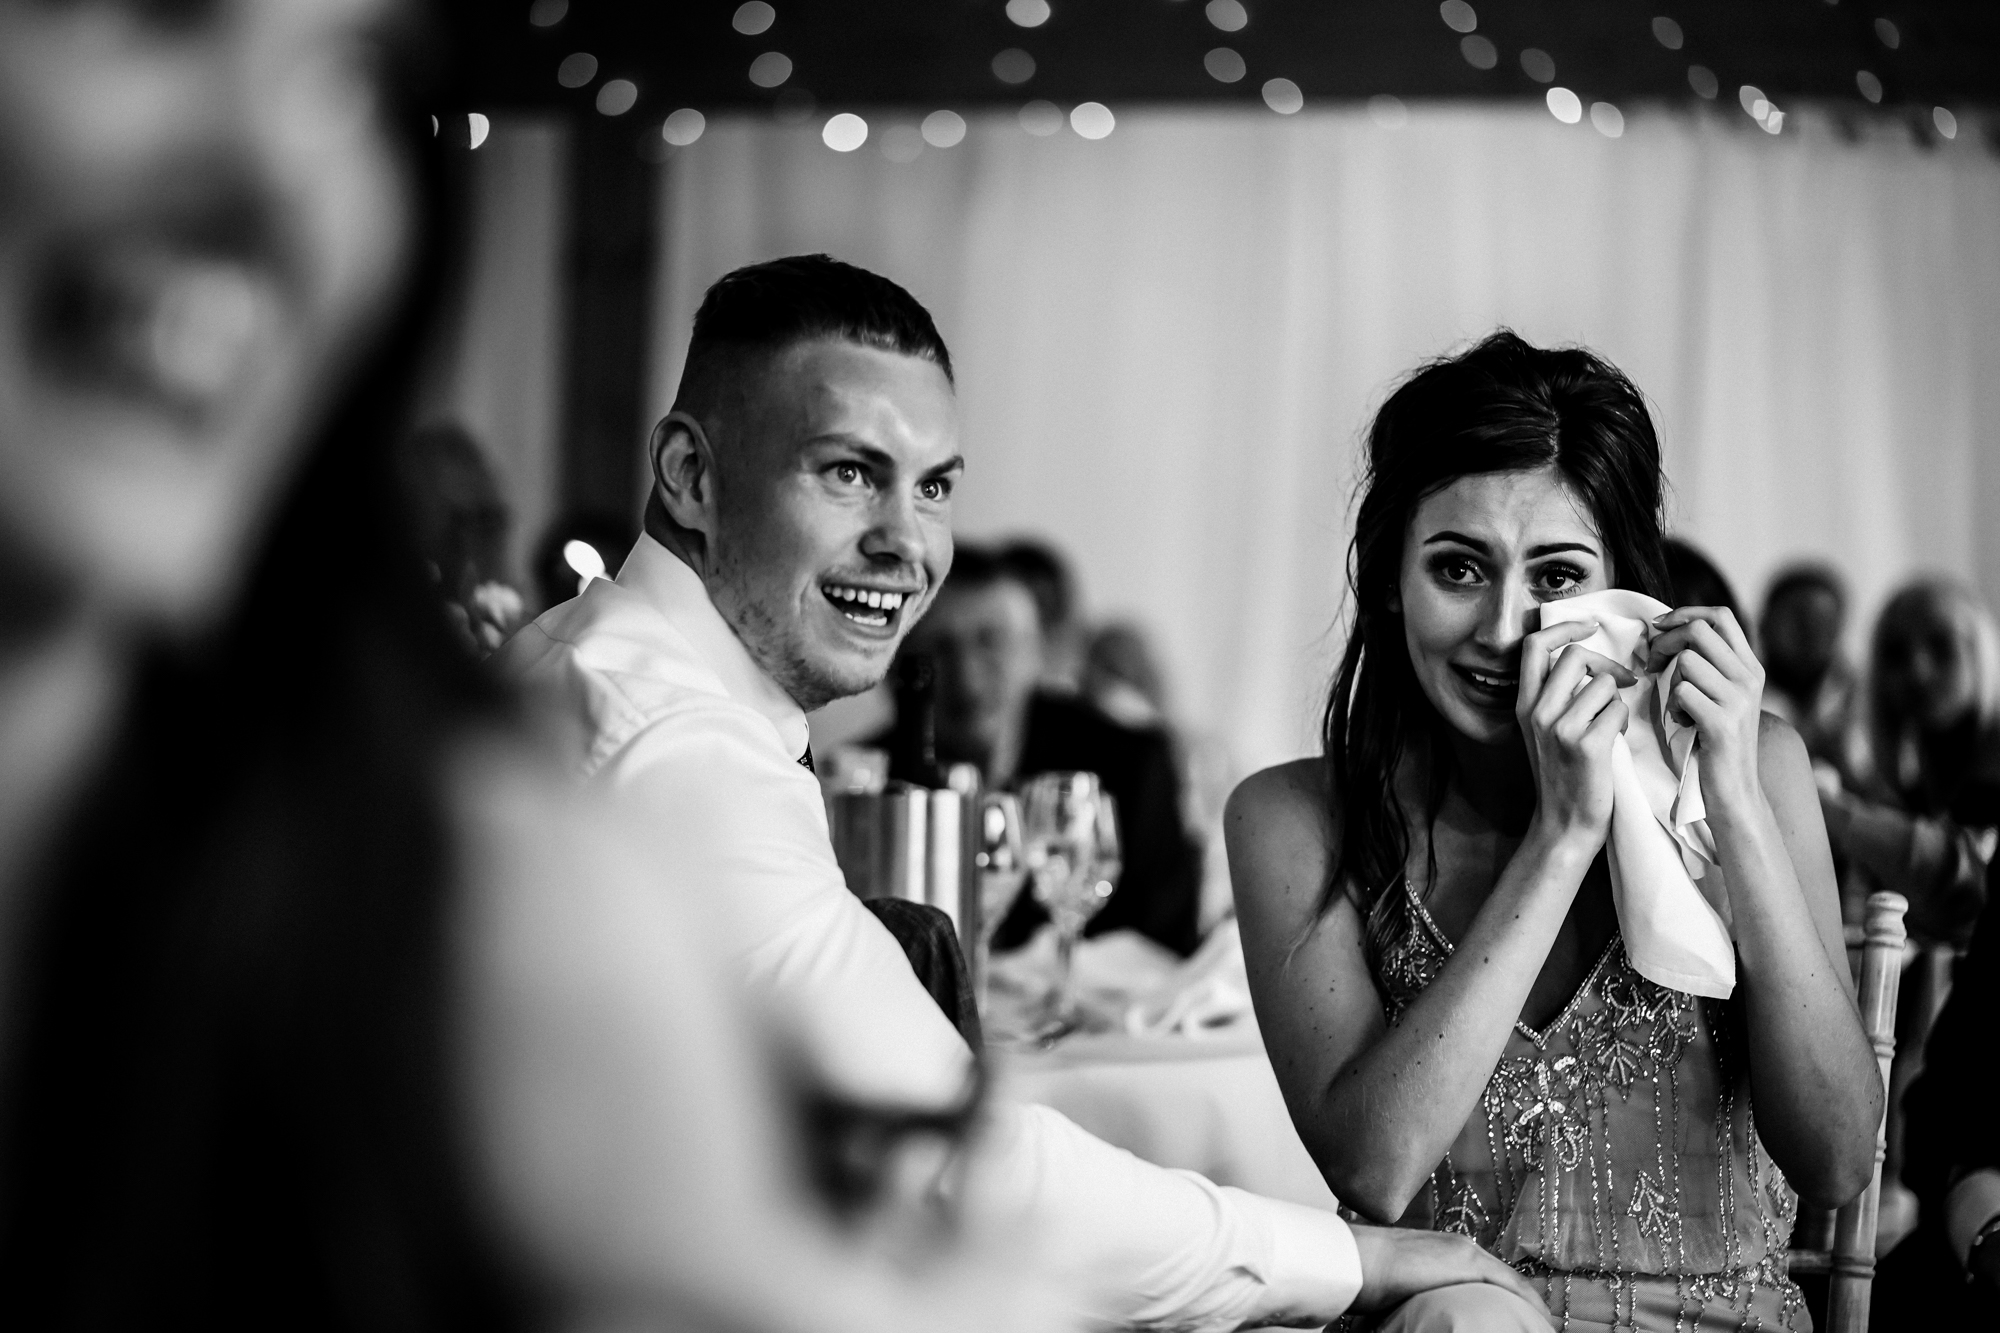 Styal Lodge Wedding Photography Cheshire wedding photographer (41 of 54).jpg